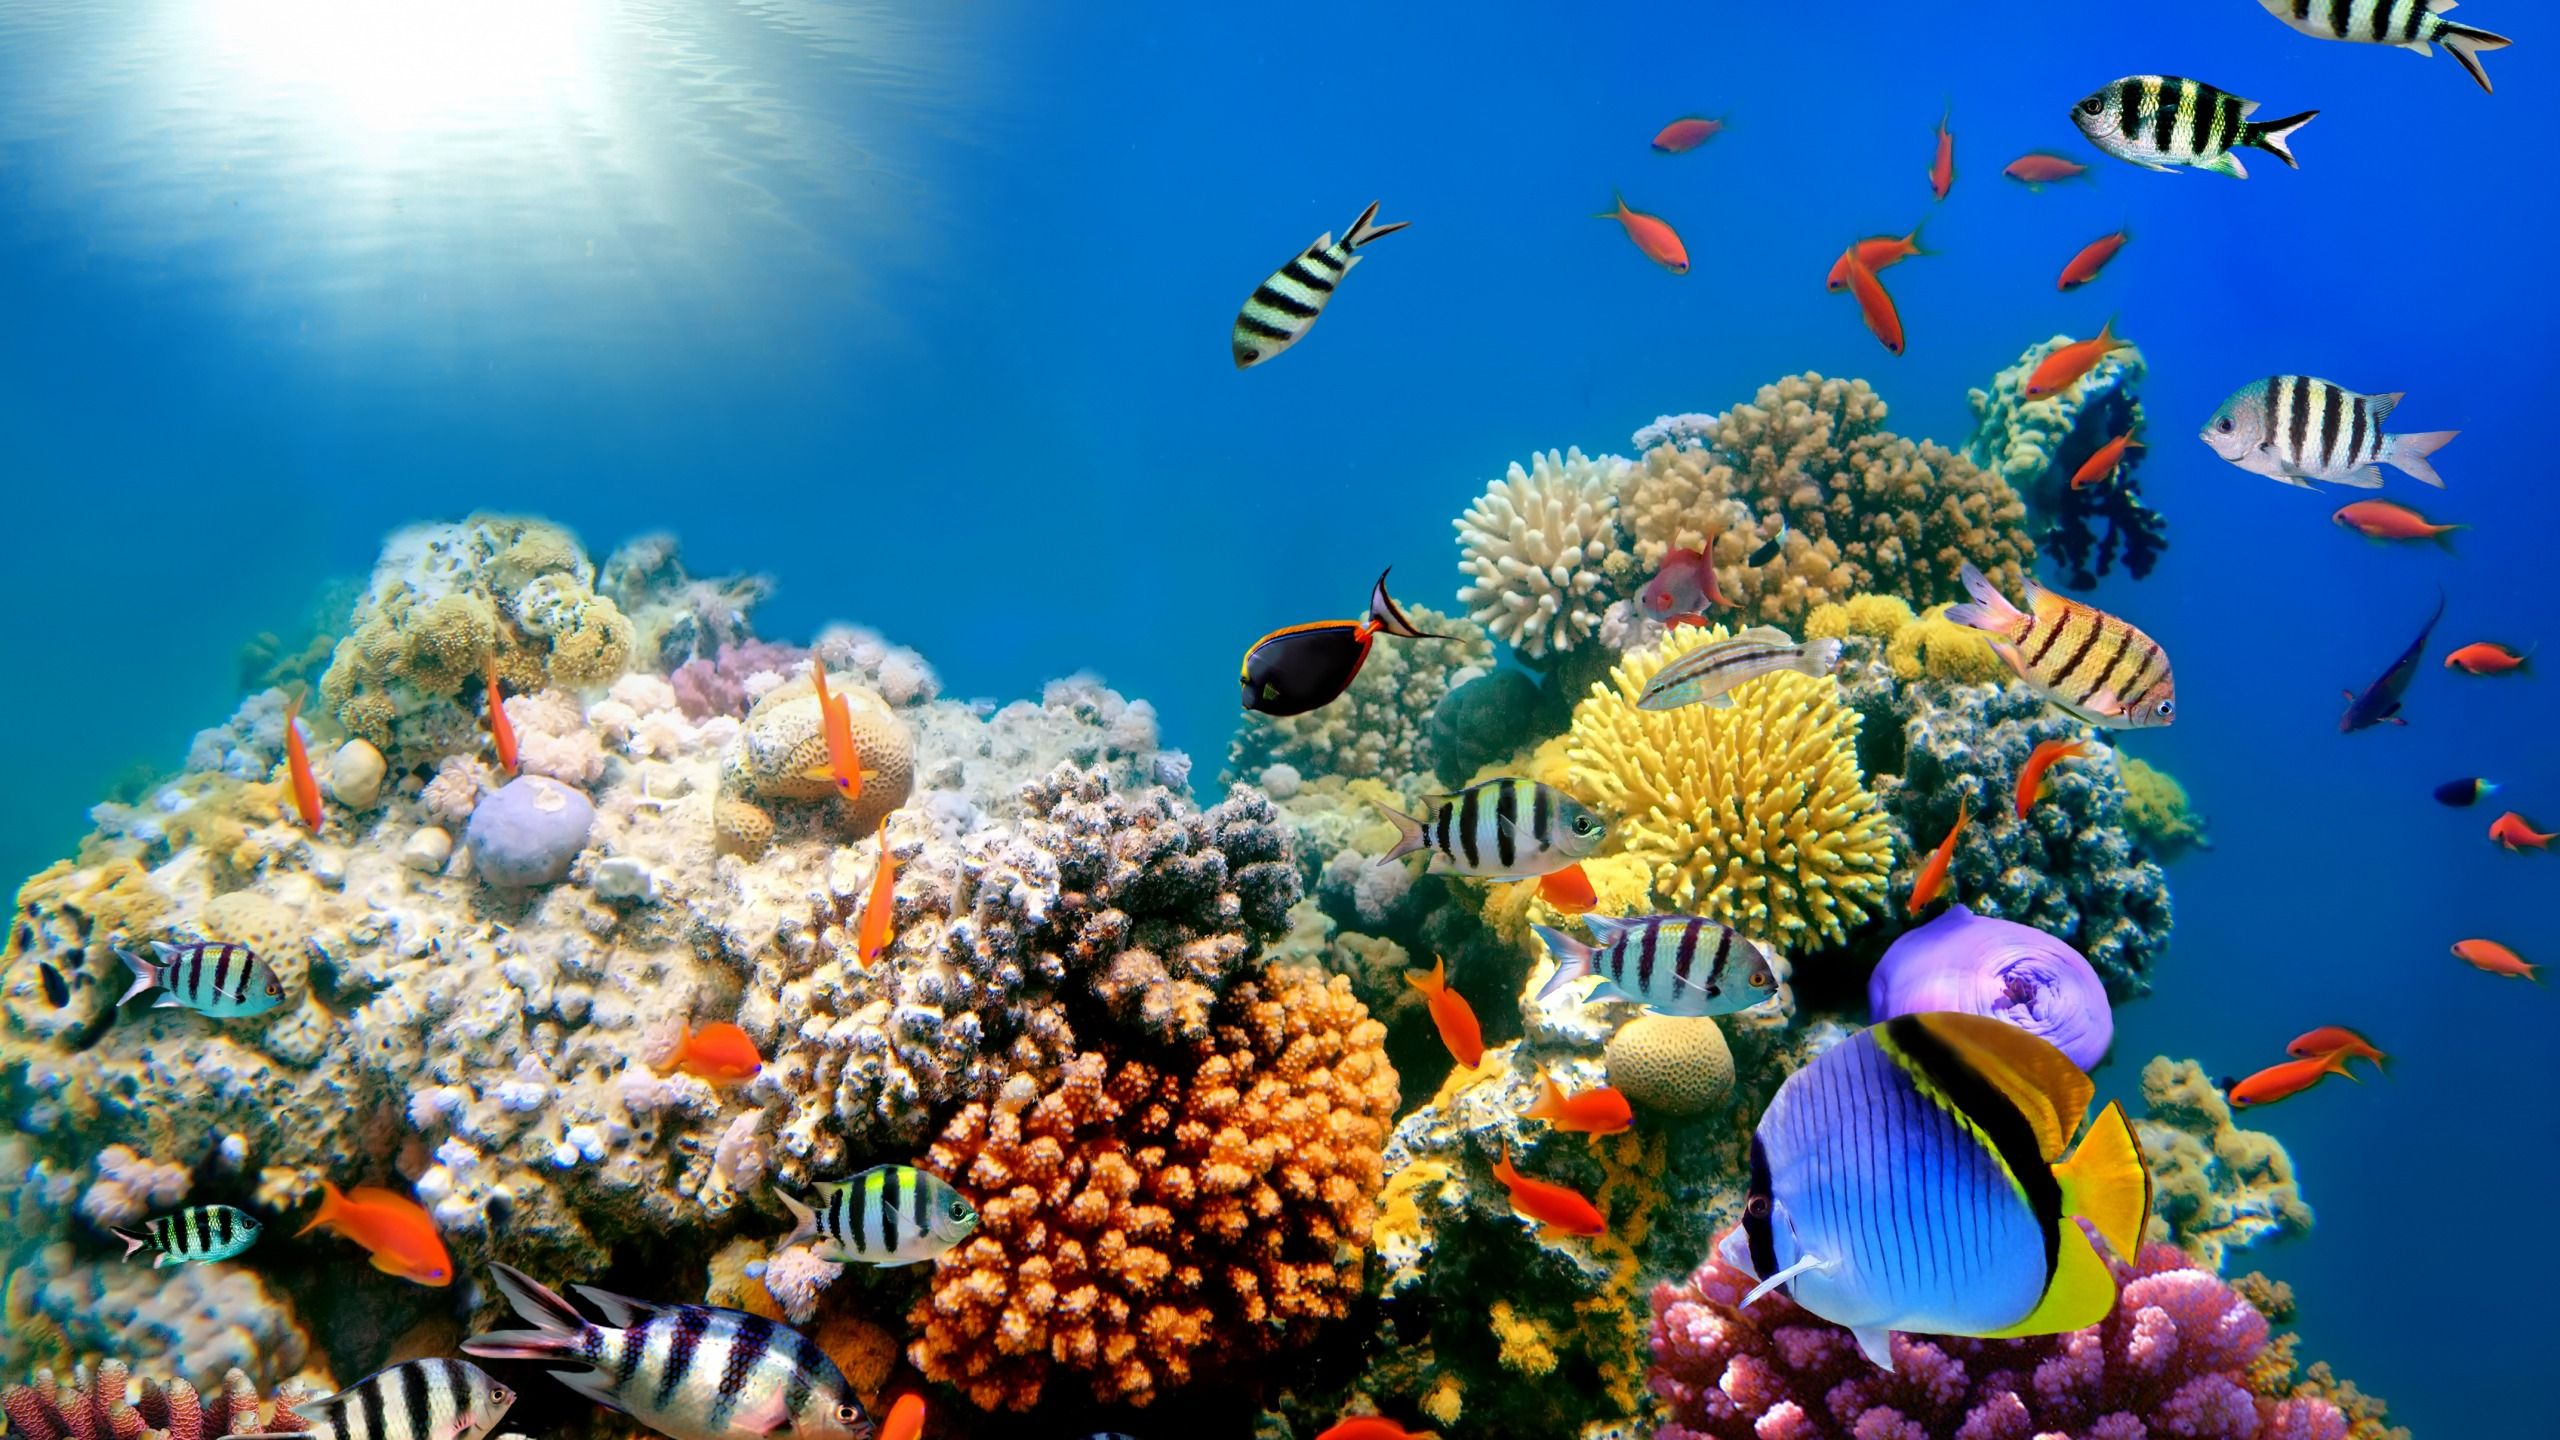 Tropical Wallpaper Coral Reef Underwater Ocean Fishes Underwater Tropical Wallpaper Underwater World Underwater